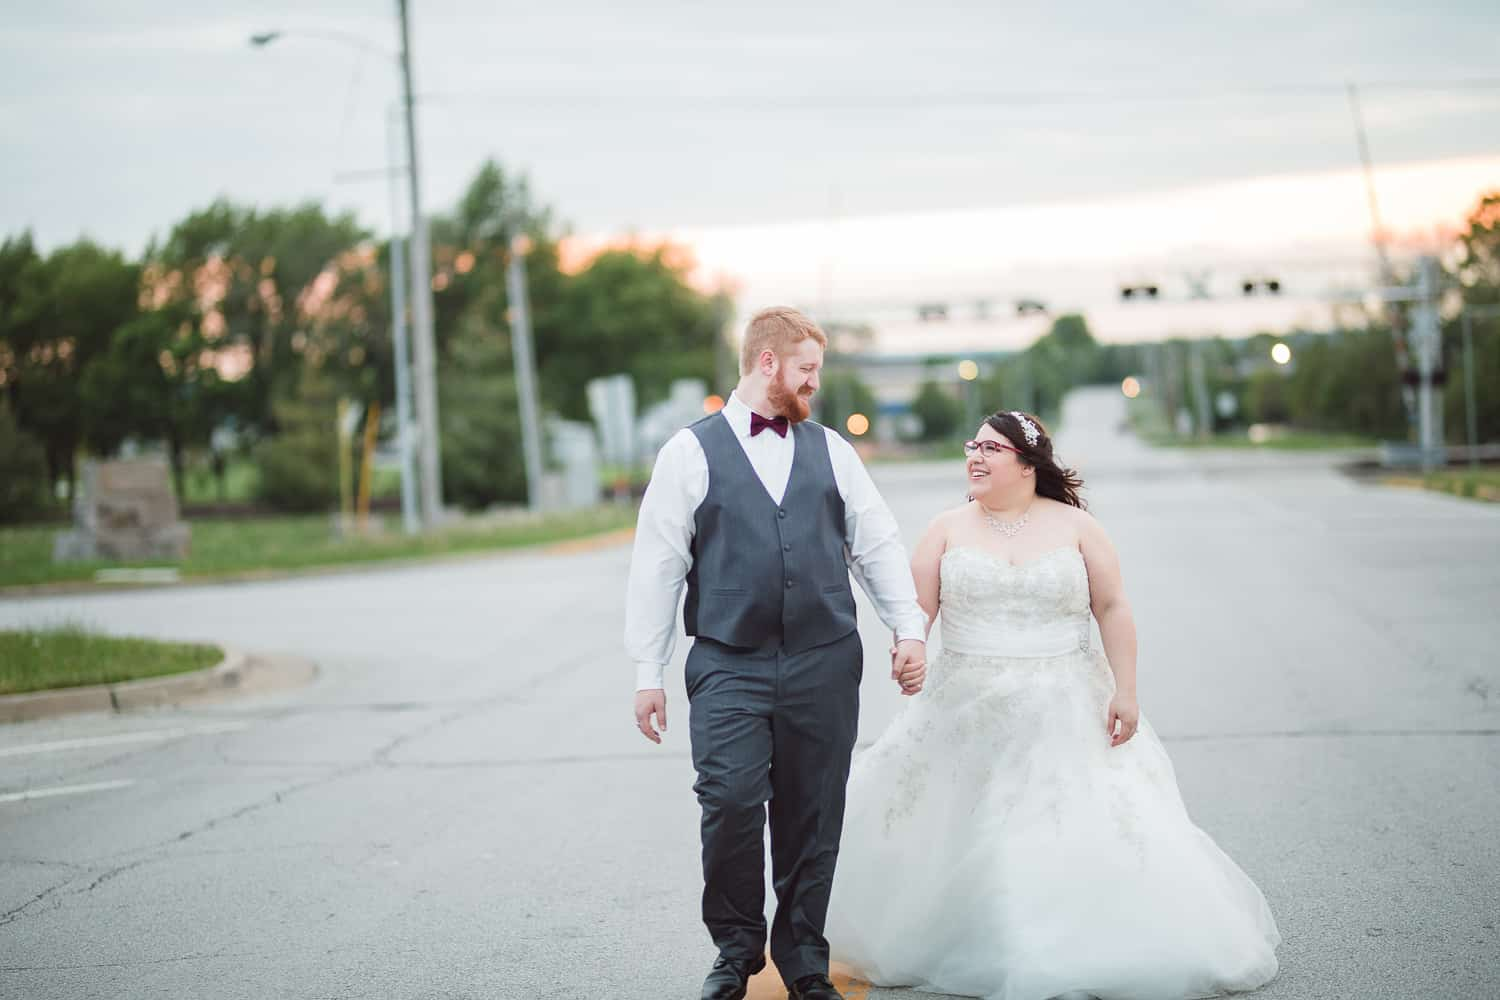 Sunset wedding pictures in downtown grandview missouri